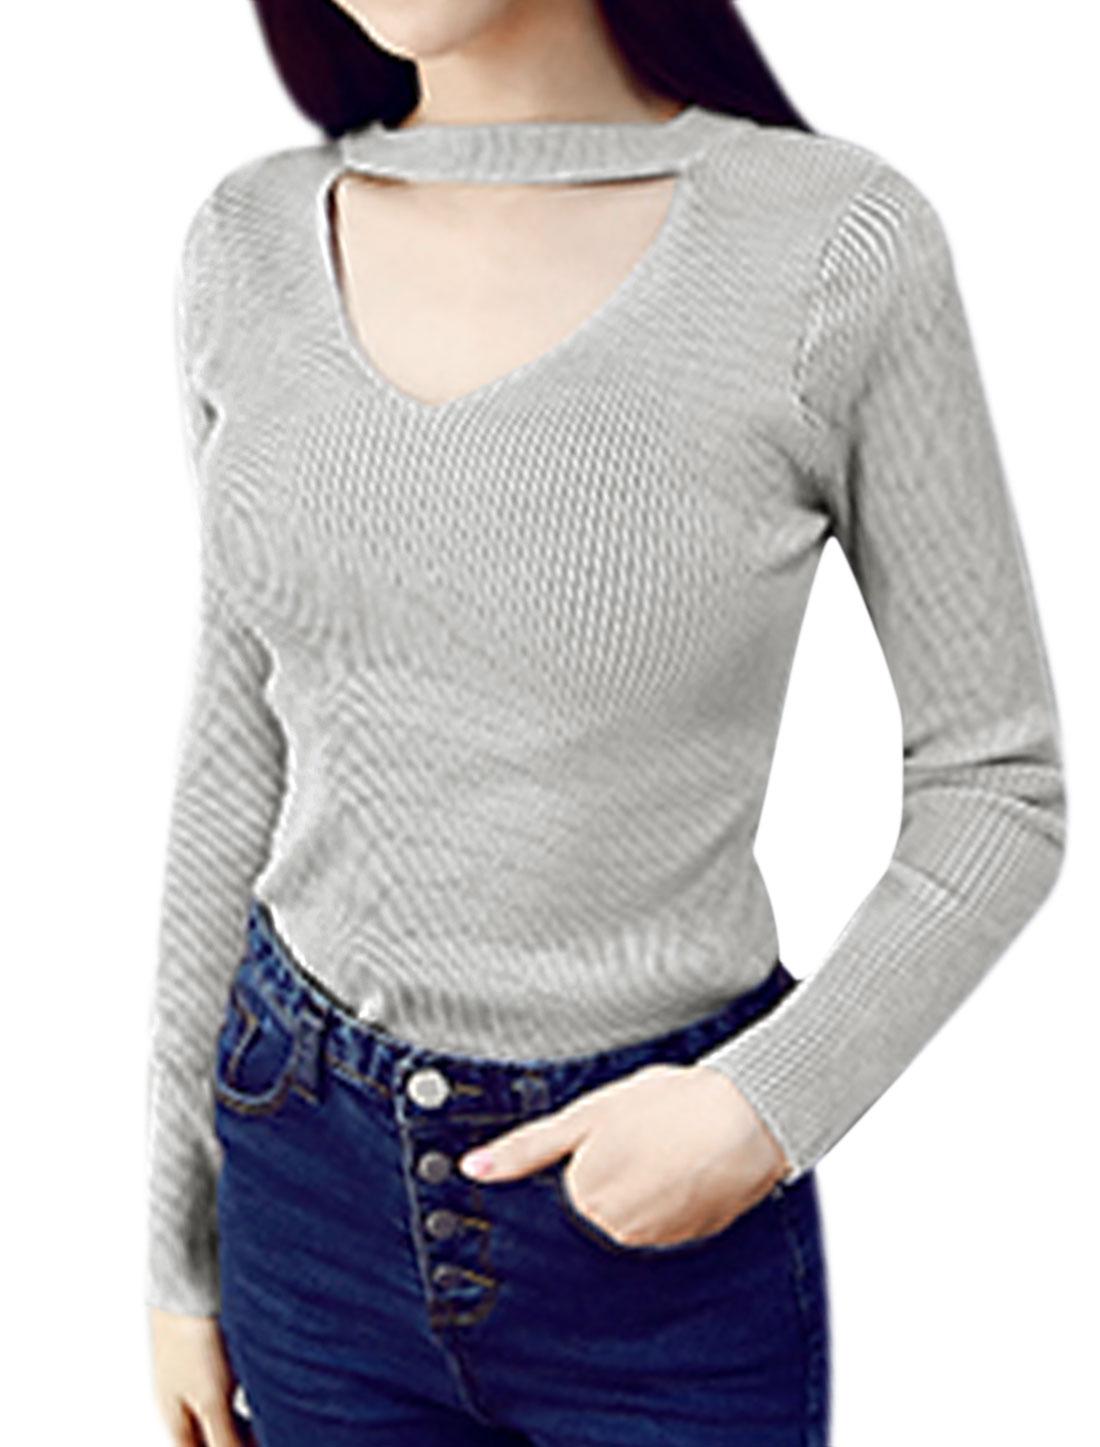 Women Crew Neck Long Sleeves Cut Out Ribbed Slim Fit Top Gray XS